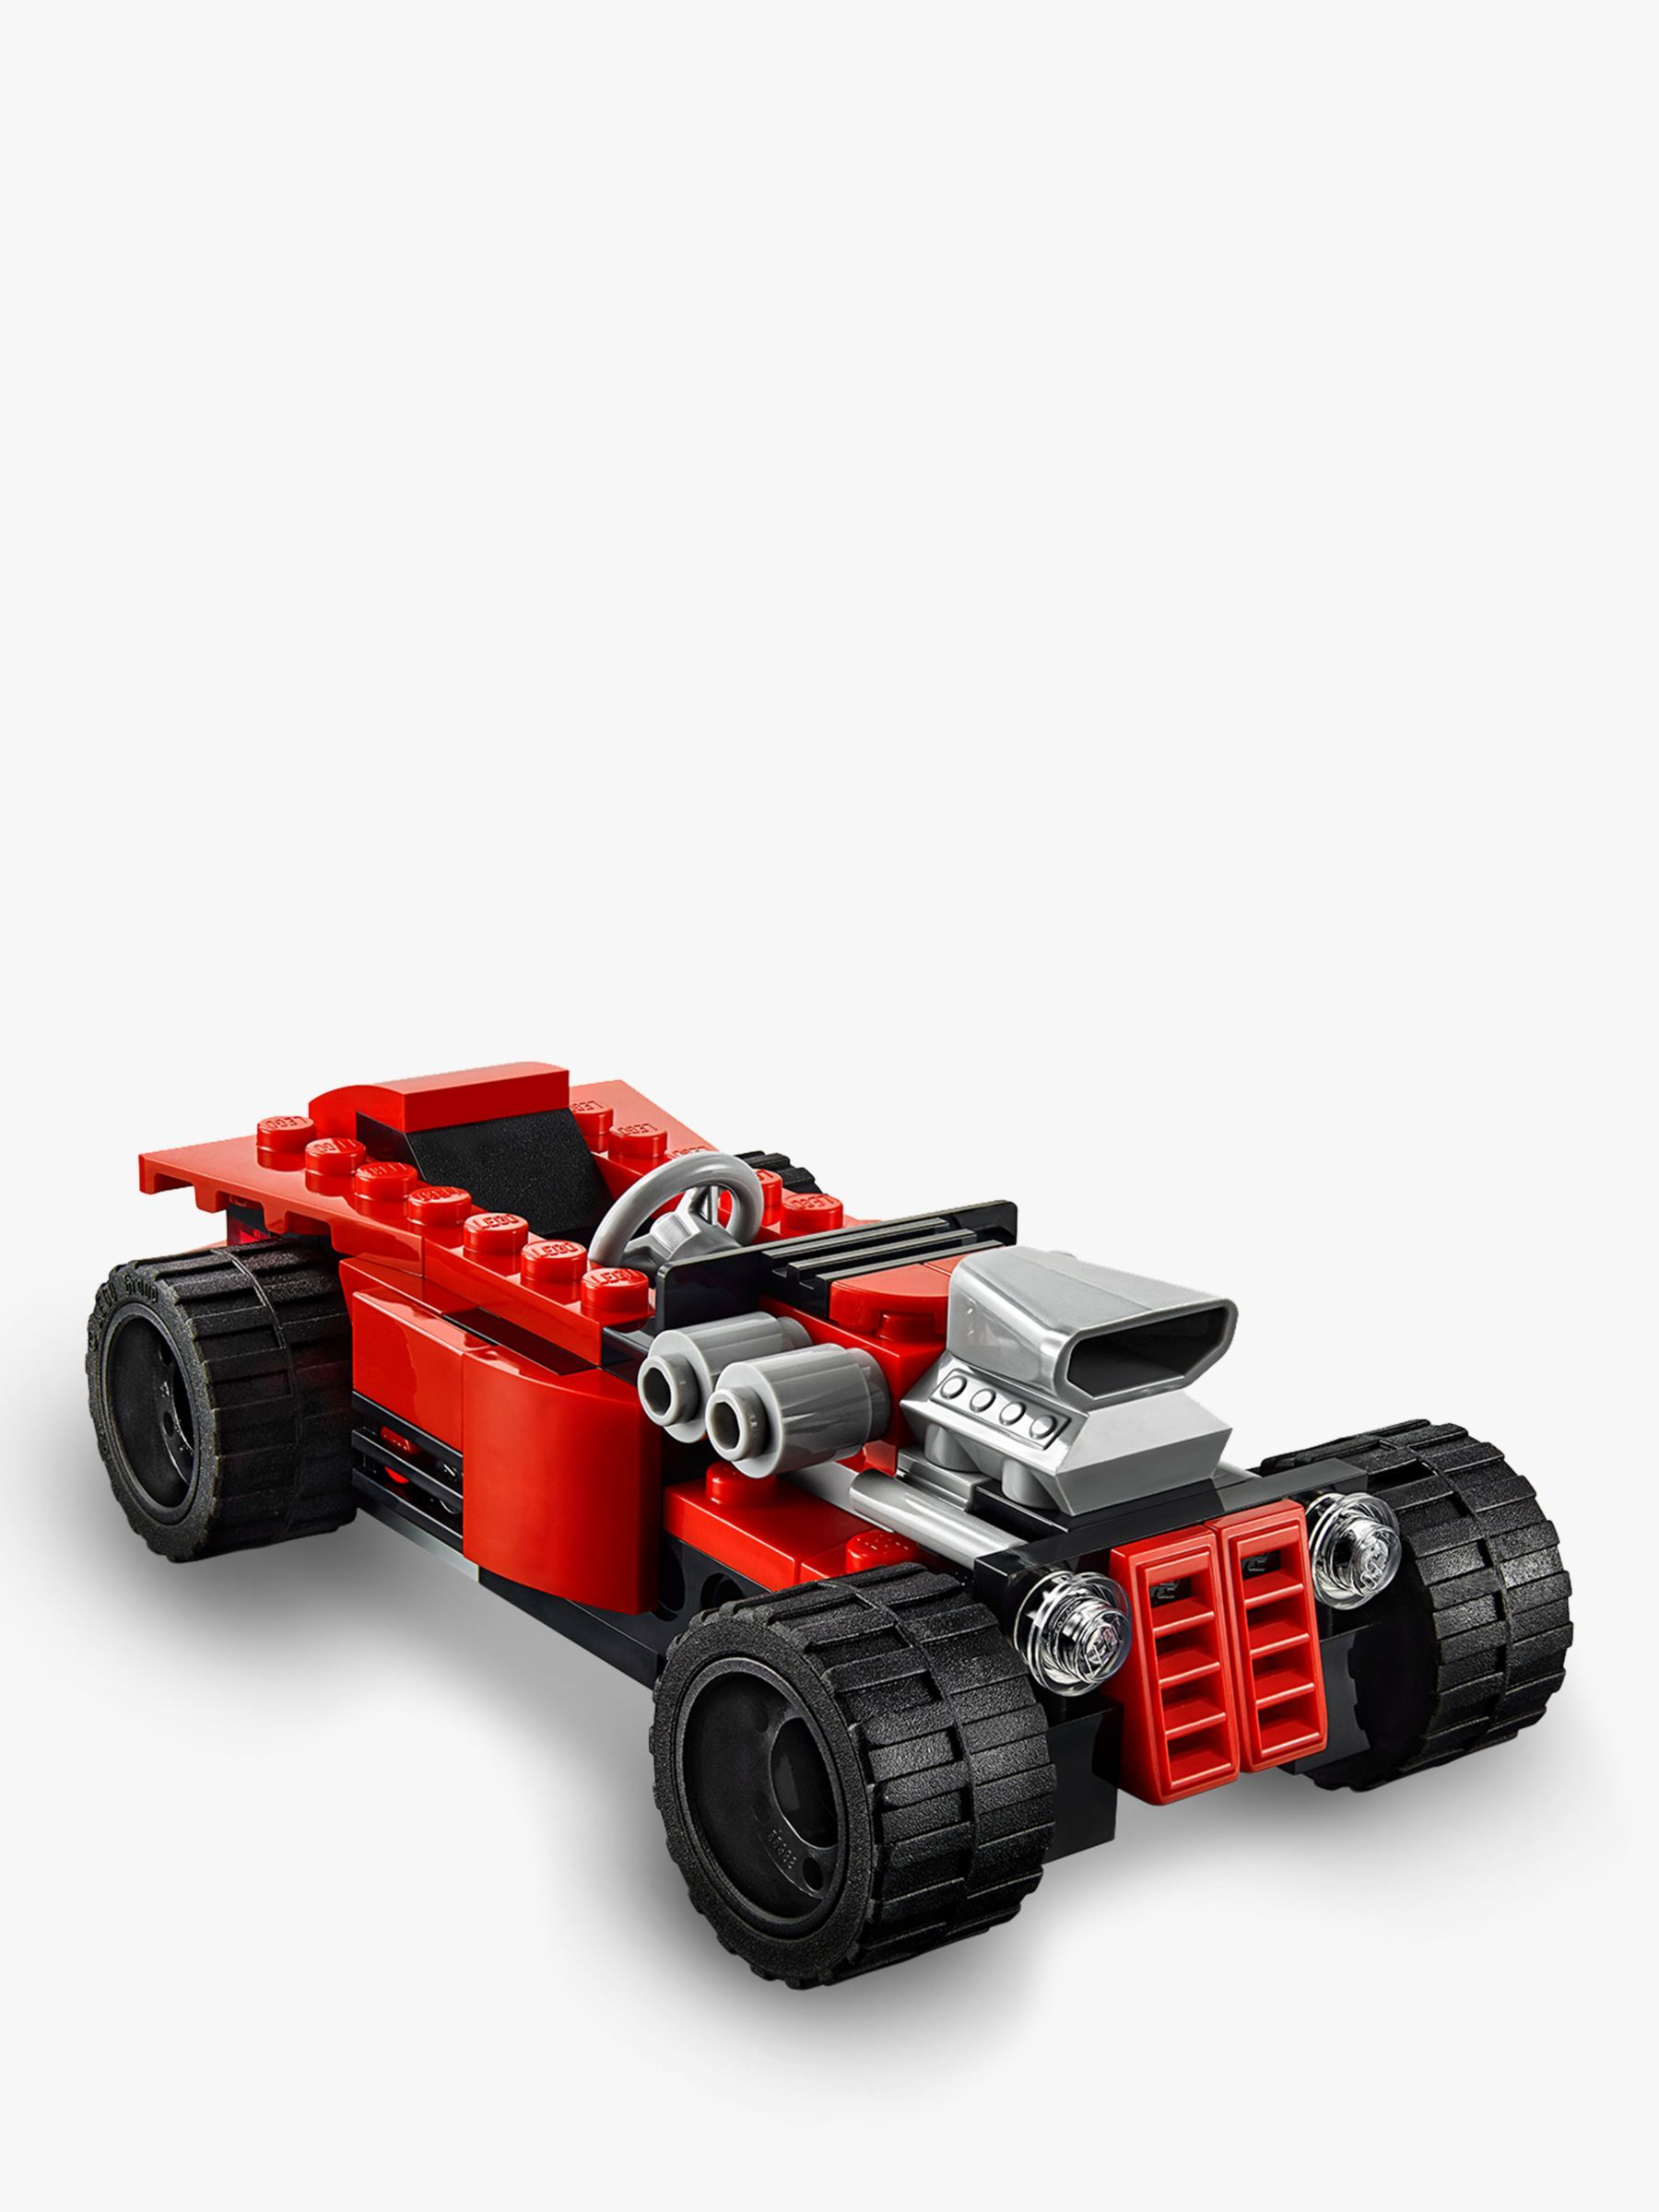 LEGO Creator 31100 3 in 1 Sports Car Hot Rod Old Time